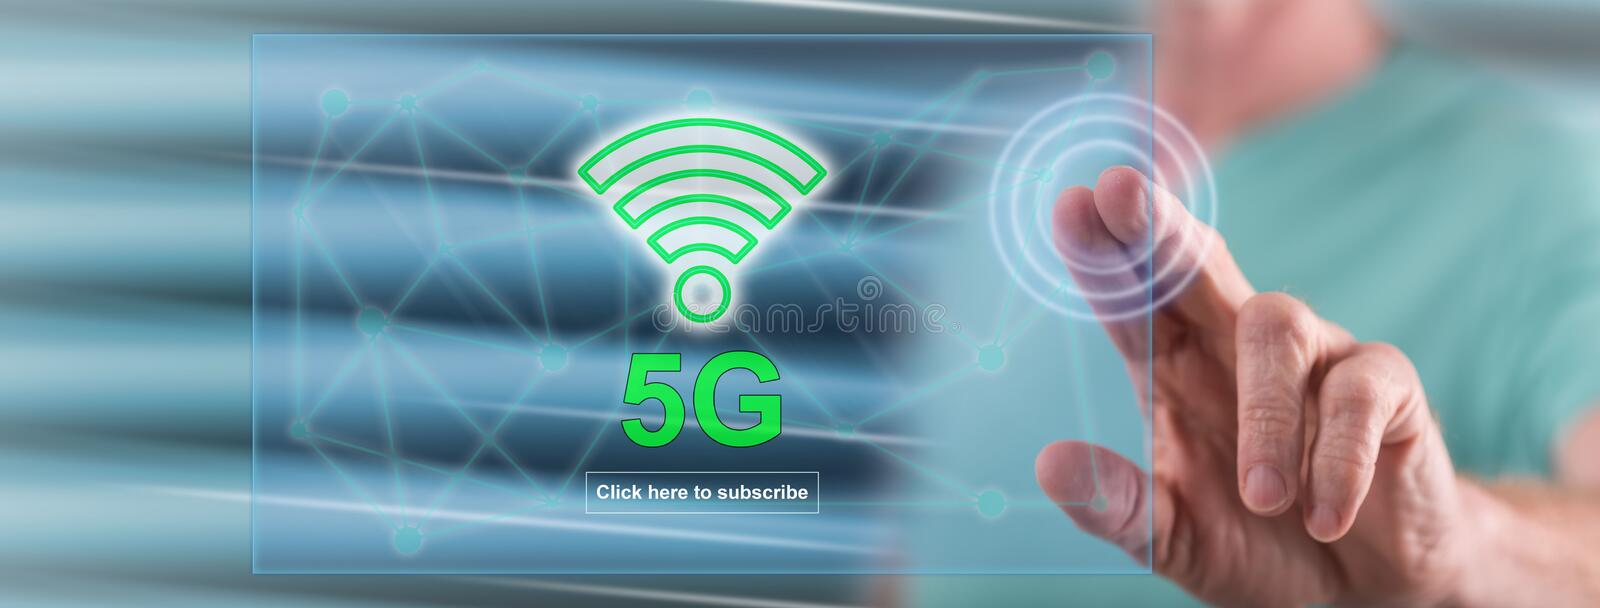 Man touching a 5g concept royalty free stock photography